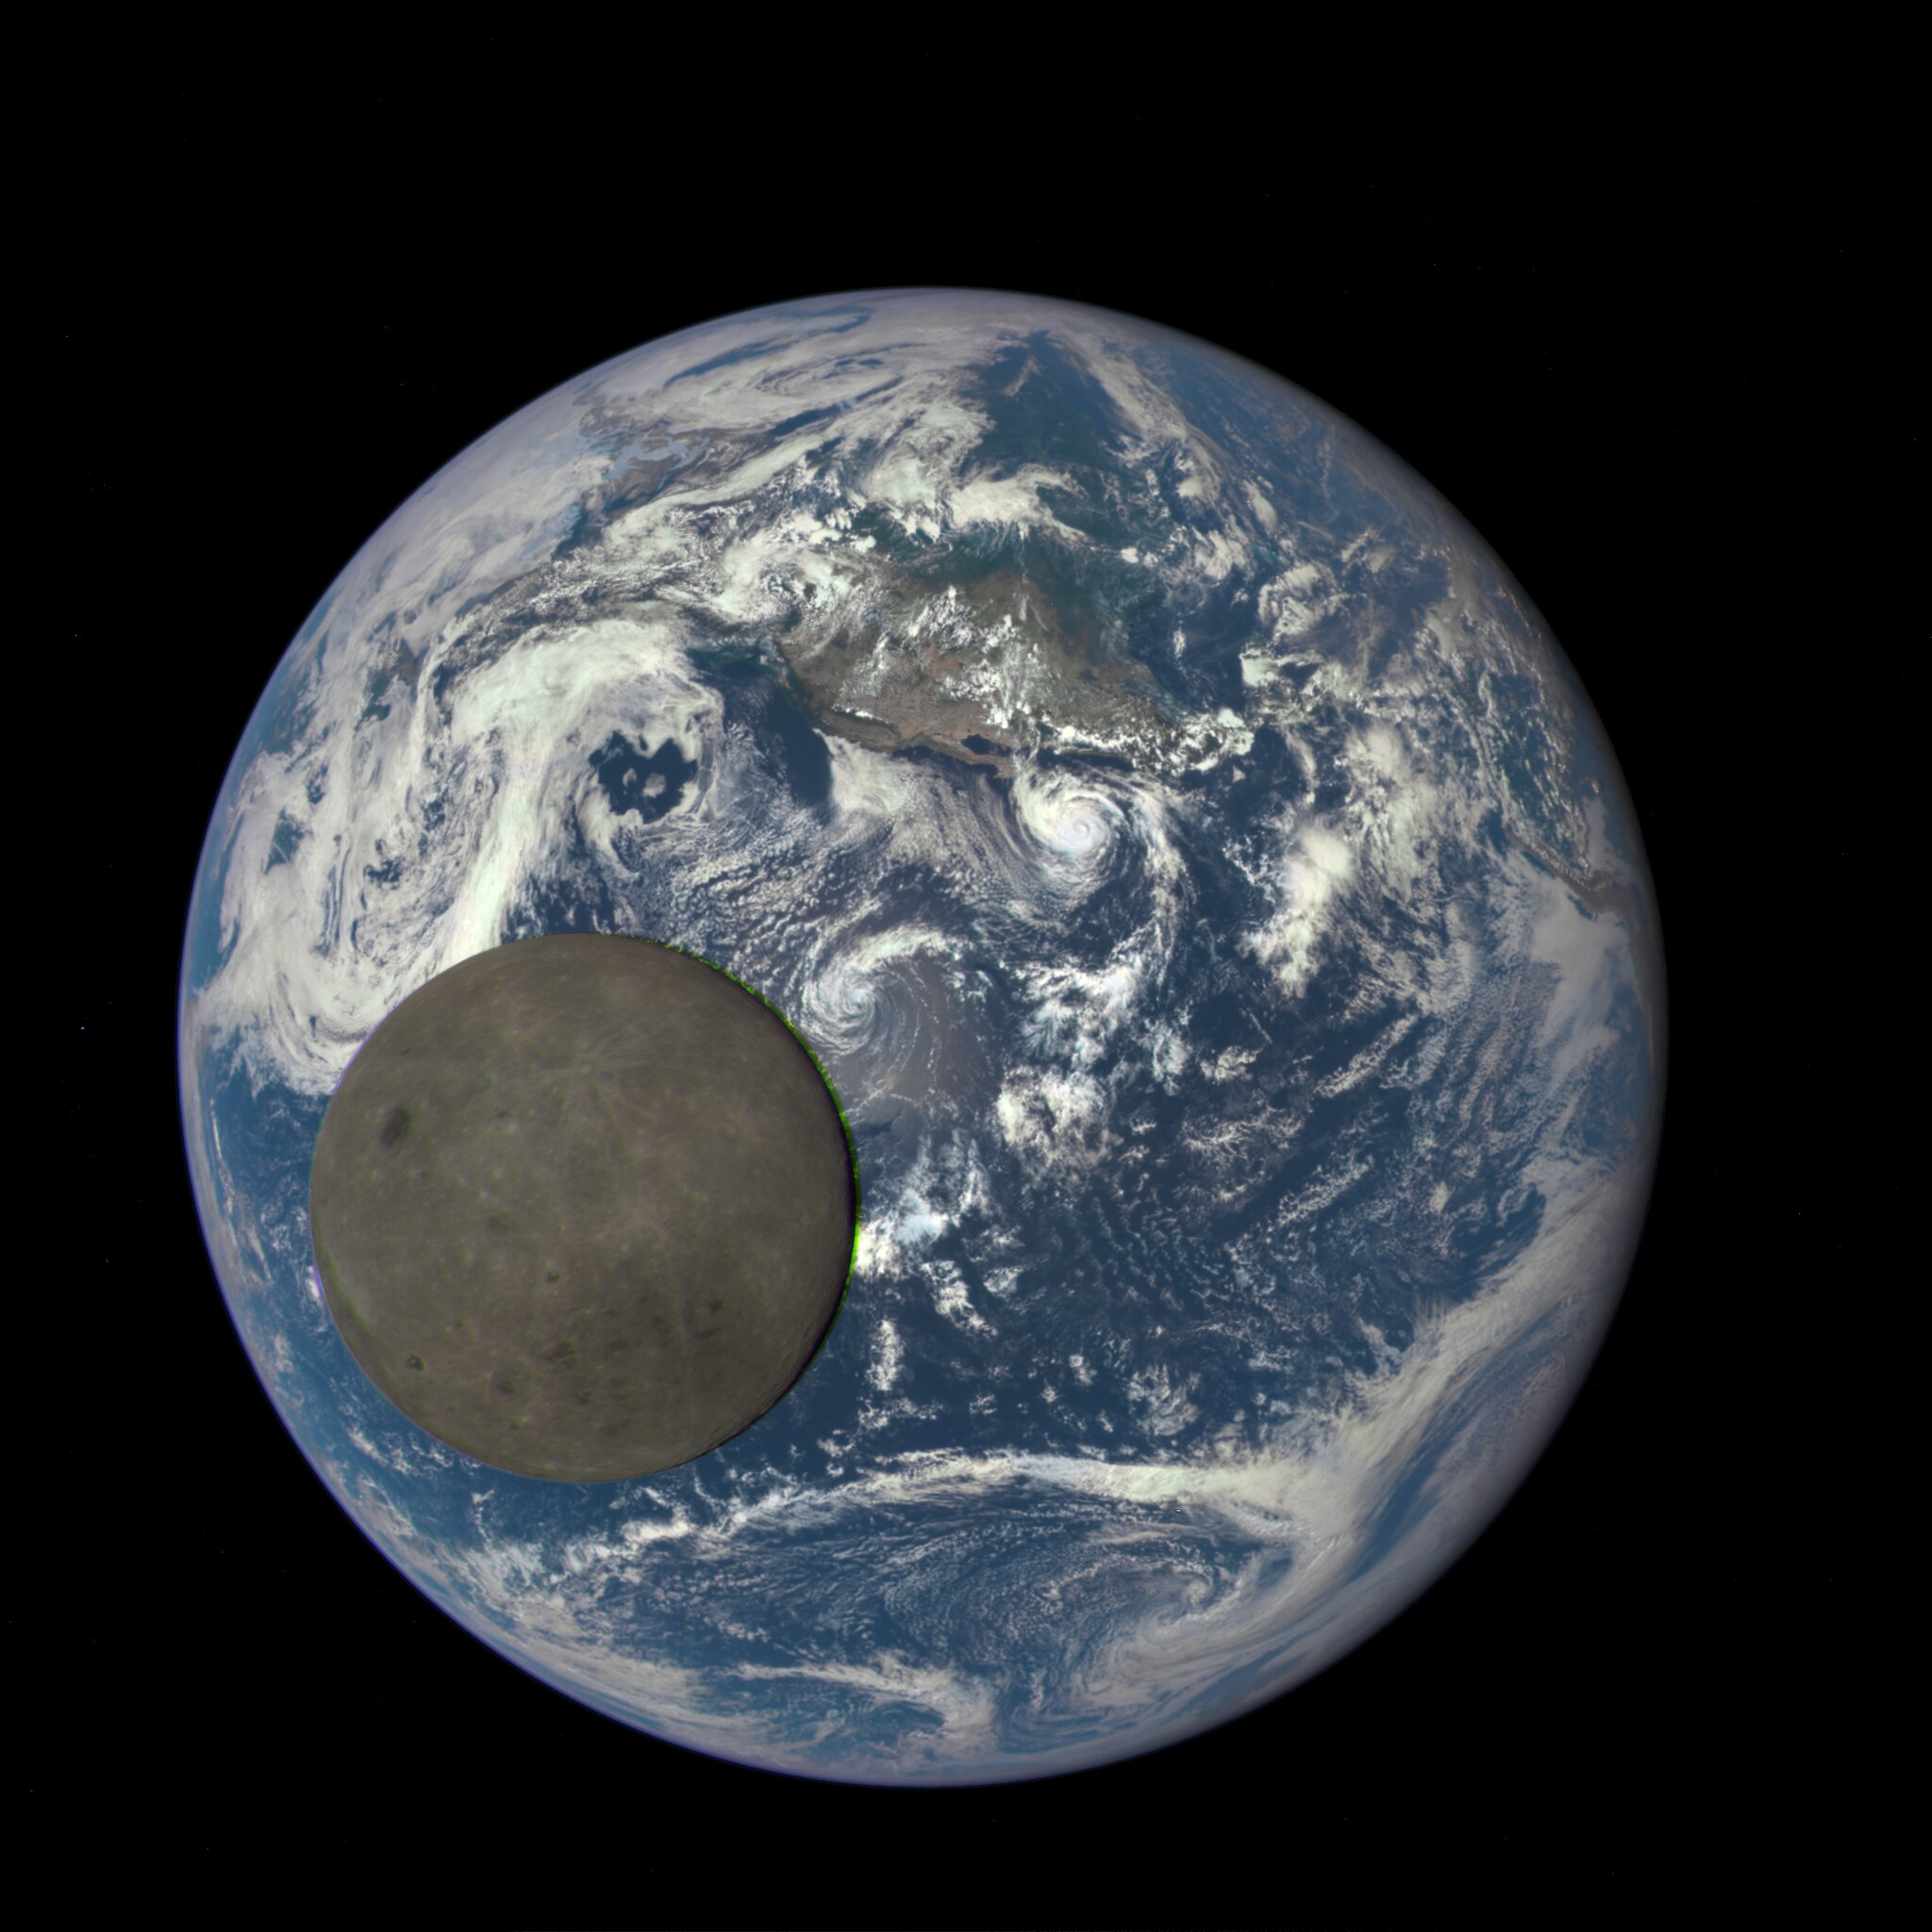 Scientists provide new explanation for the strange asymmetry of the moon